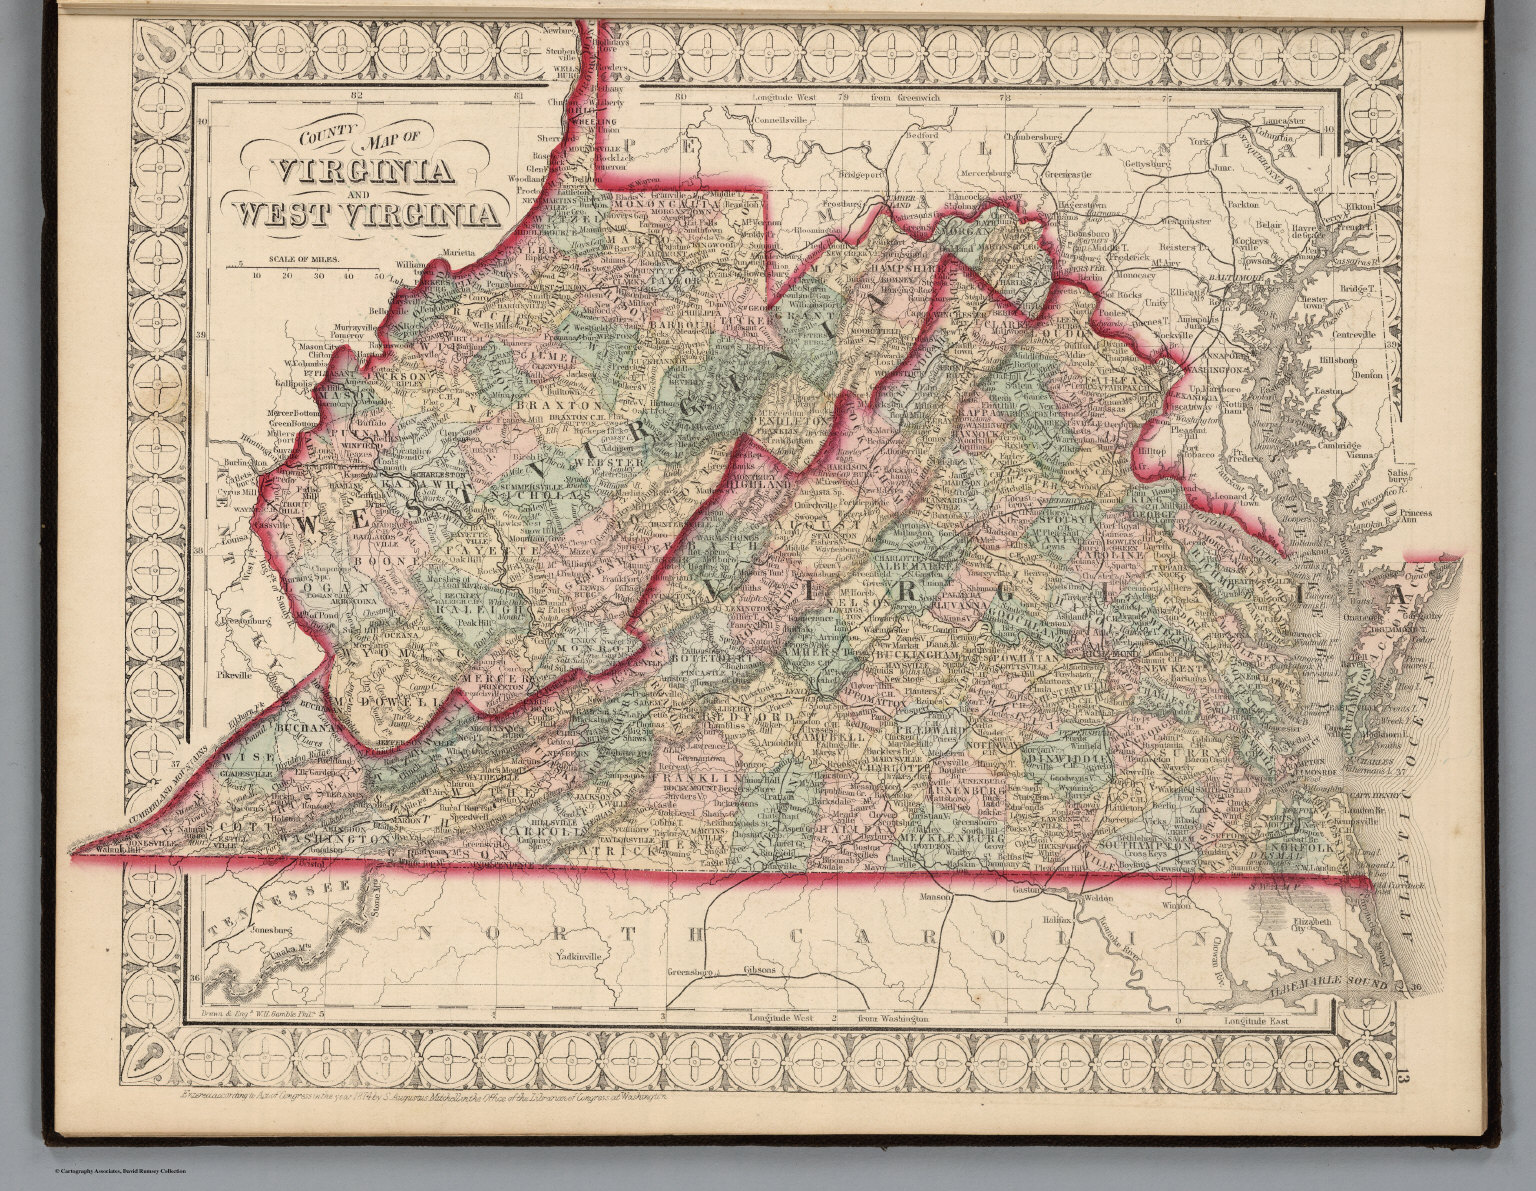 Map Of Virginia And West Virginia Together.County Map Of Virginia And West Virginia David Rumsey Historical